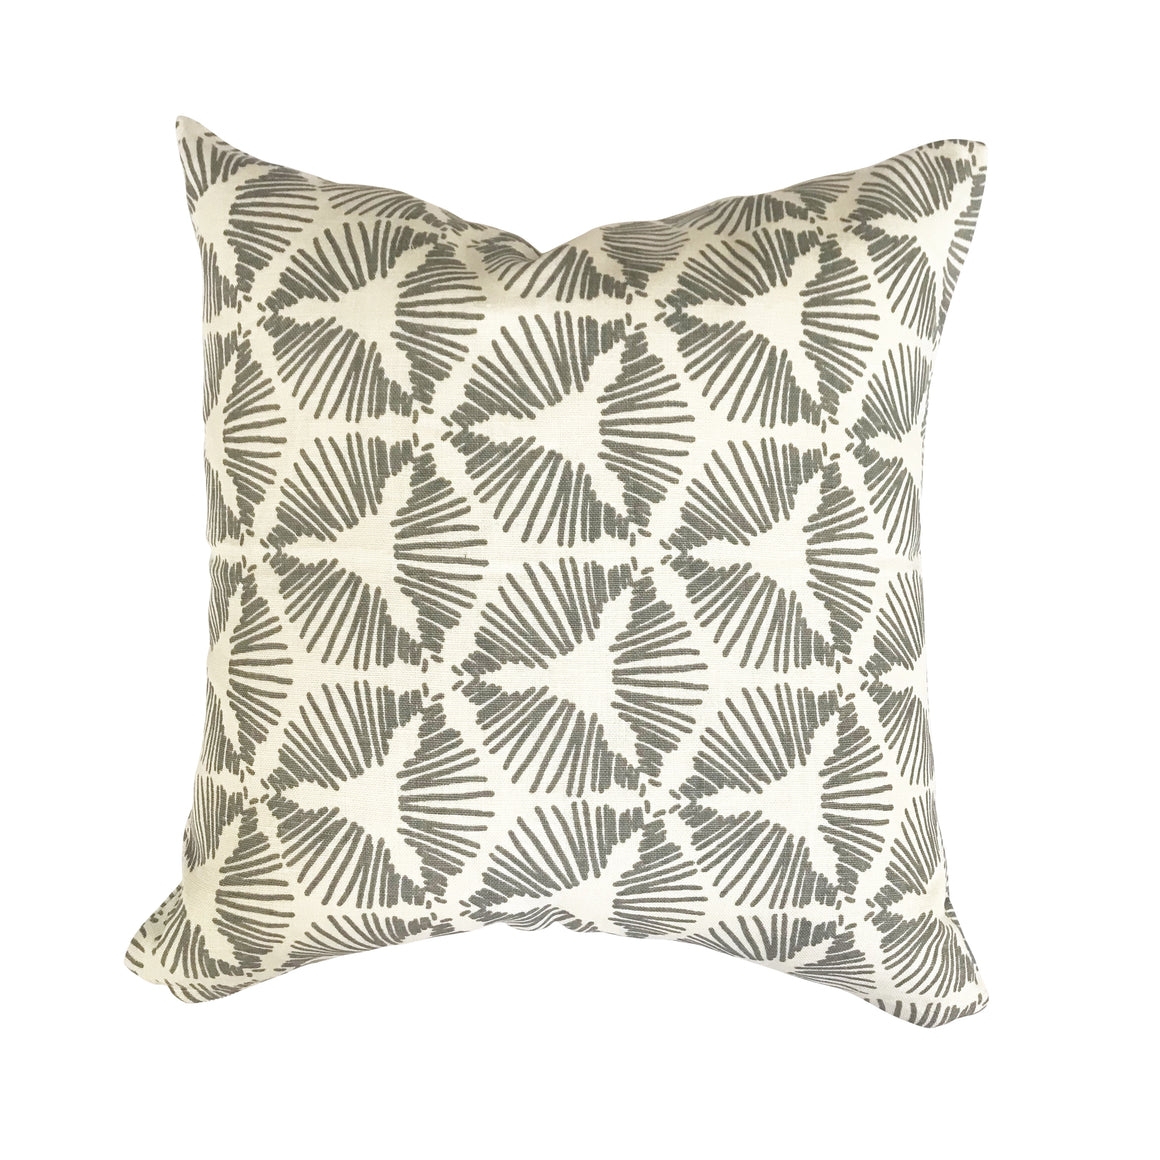 Cie pillow Dove on Oyster greige textiles